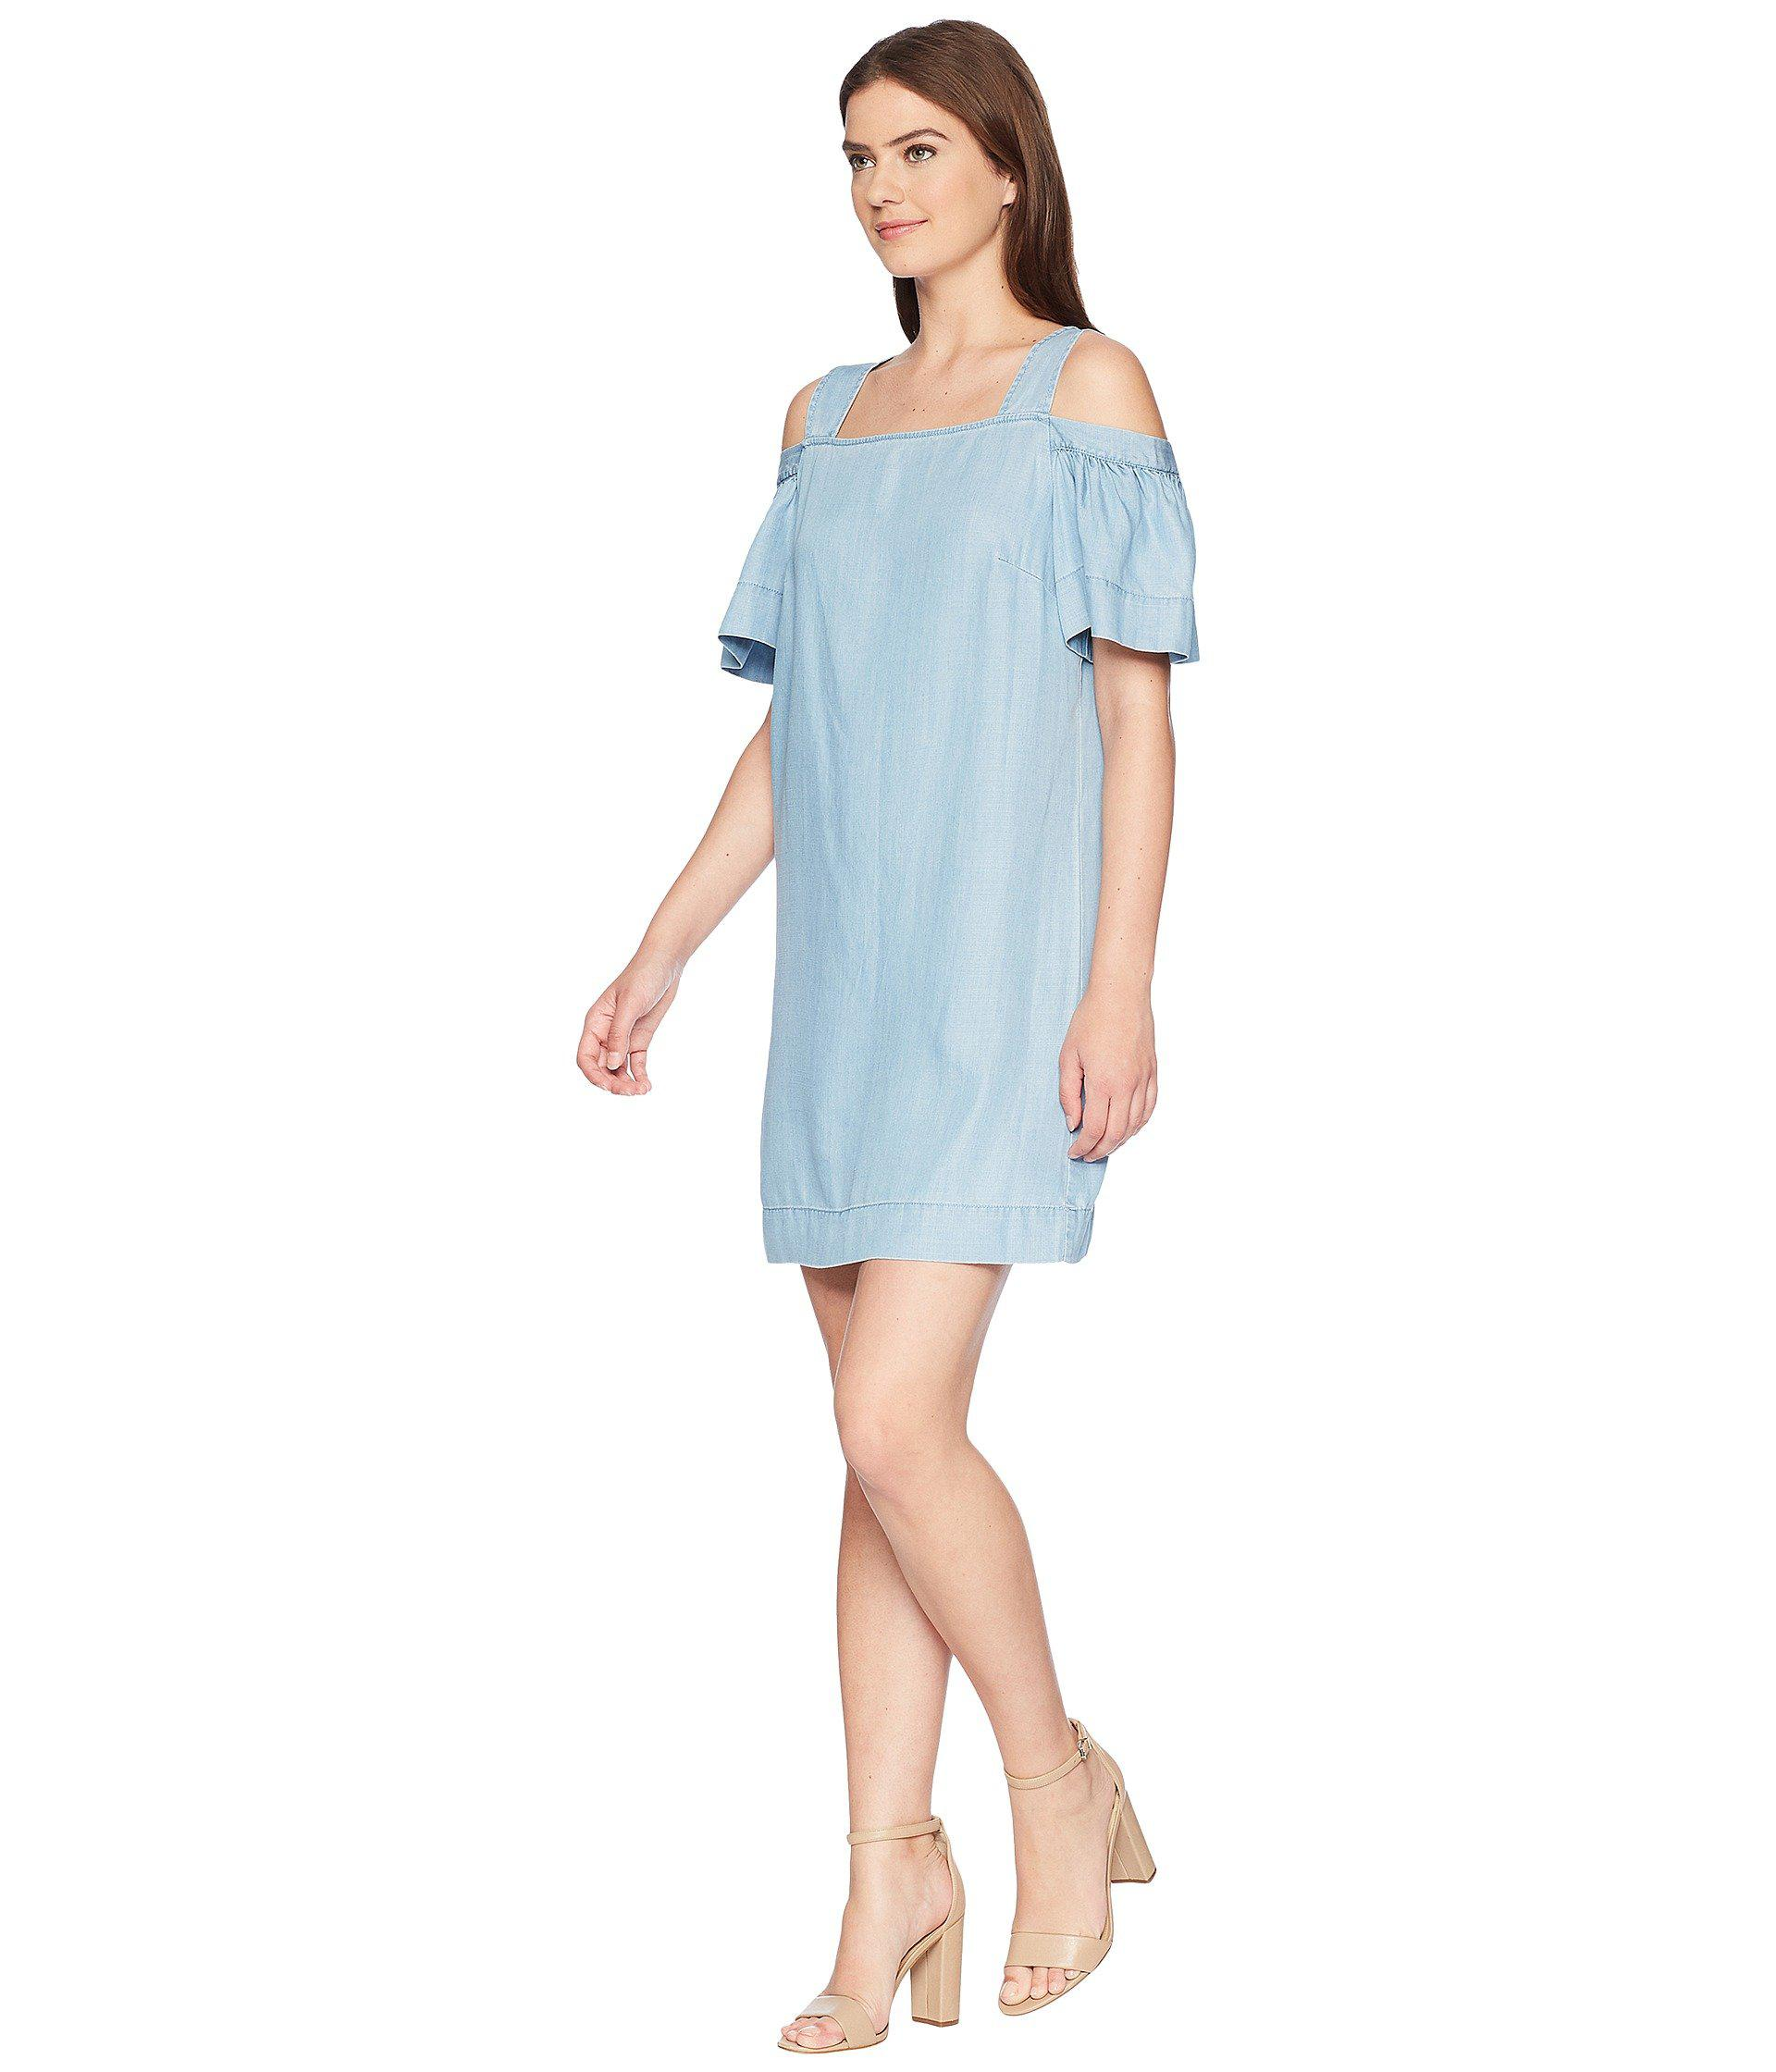 9918bda626958 Lyst - Two By Vince Camuto Ruffled Cold Shoulder Dress in Blue - Save 58%